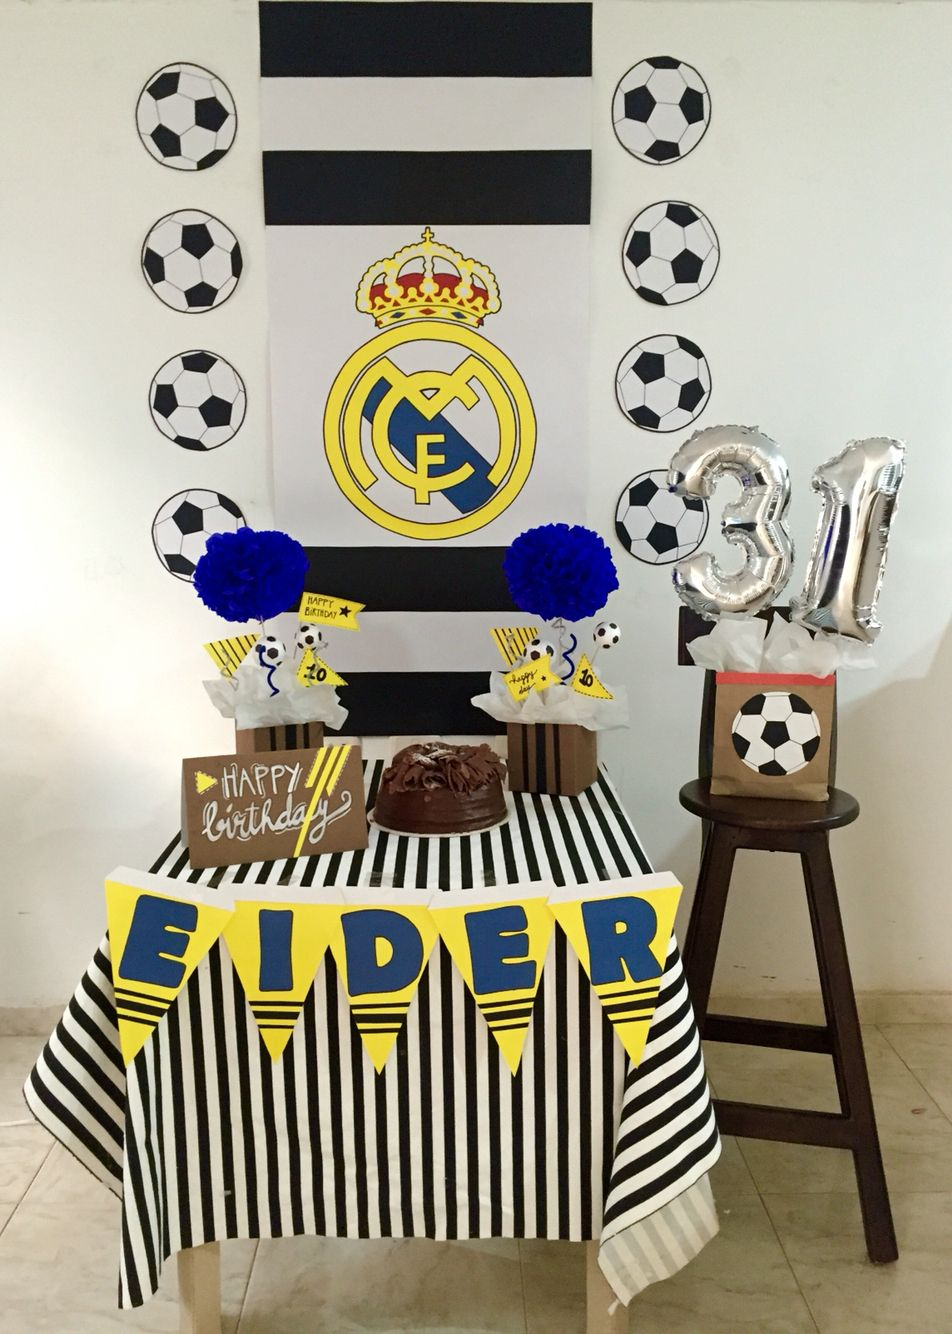 Soccer party real madrid real madrid party pinterest soccer soccer party real madrid altavistaventures Images